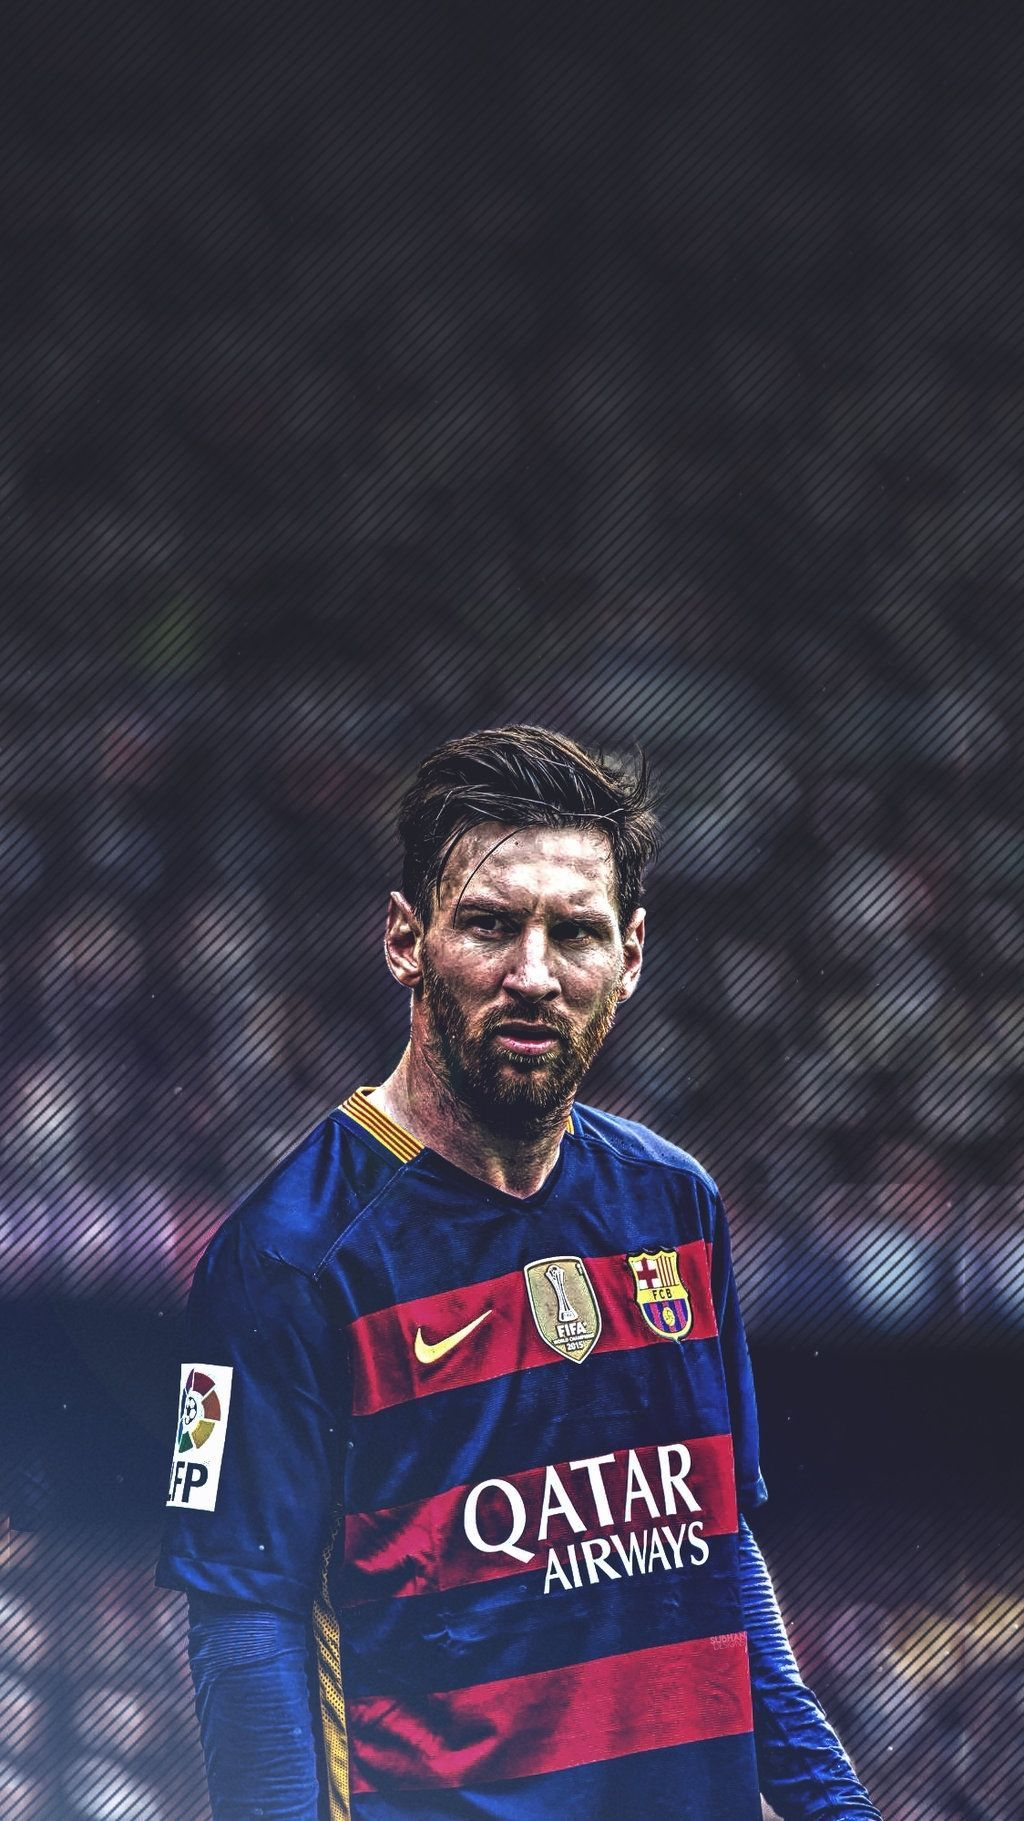 Lionel Messi Iphone Wallpapers Top Free Lionel Messi Iphone Backgrounds Wallpaperaccess